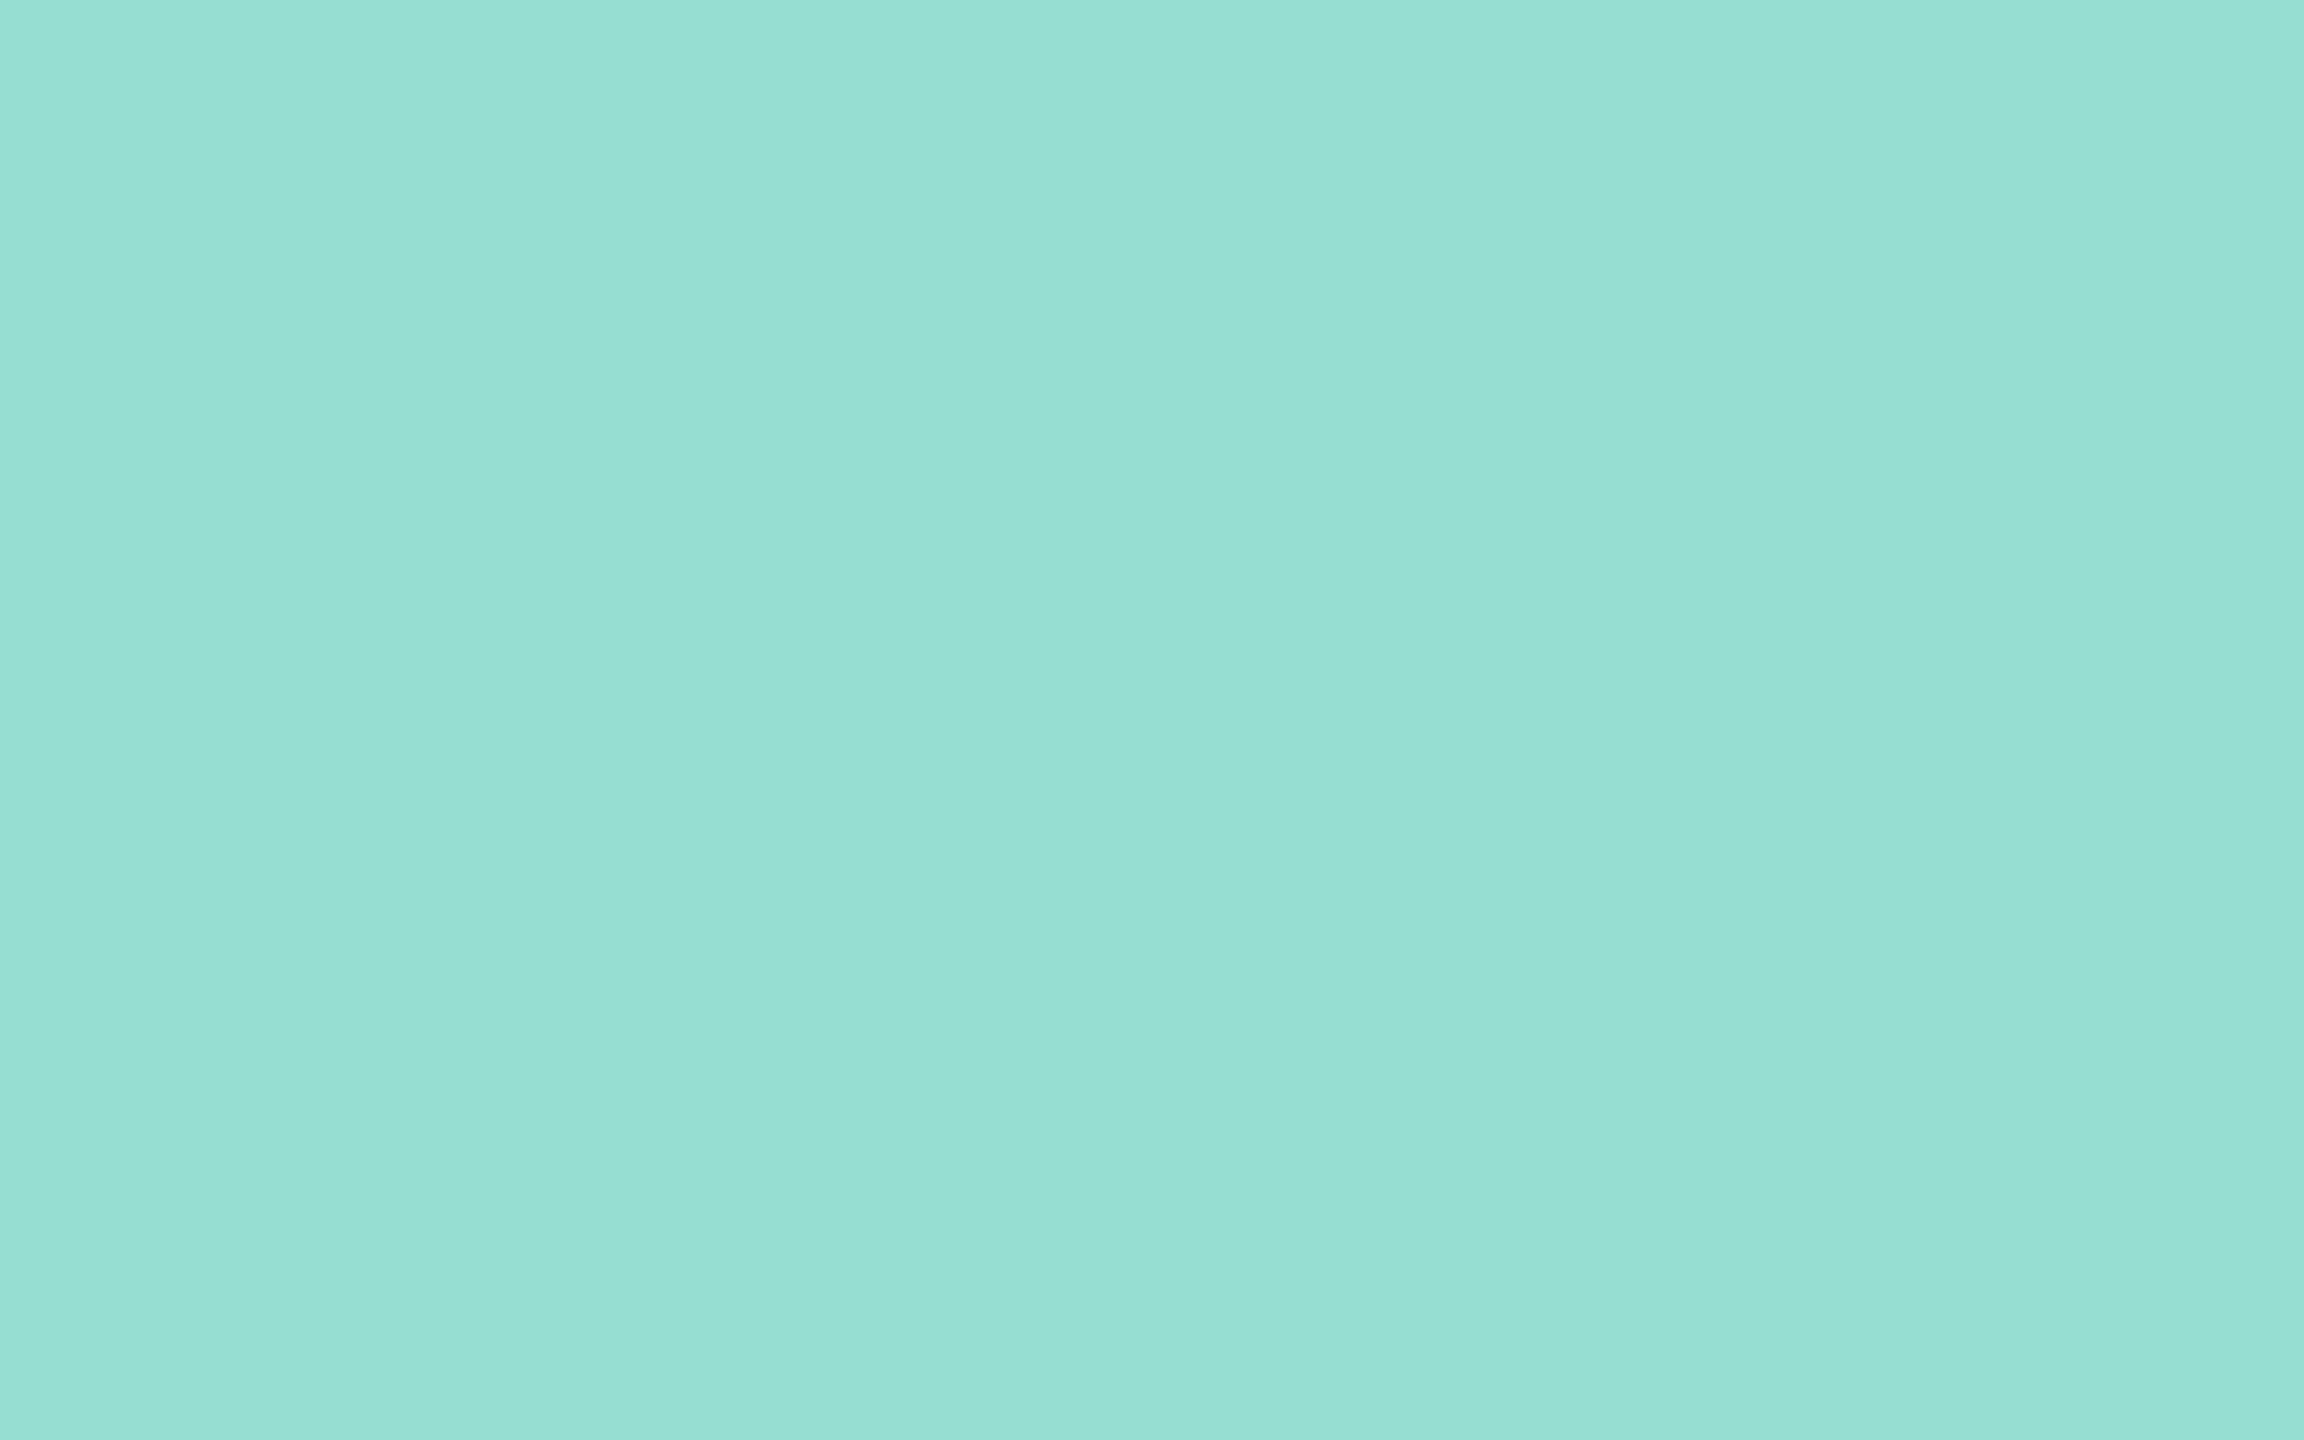 2304x1440 Pale Robin Egg Blue Solid Color Background